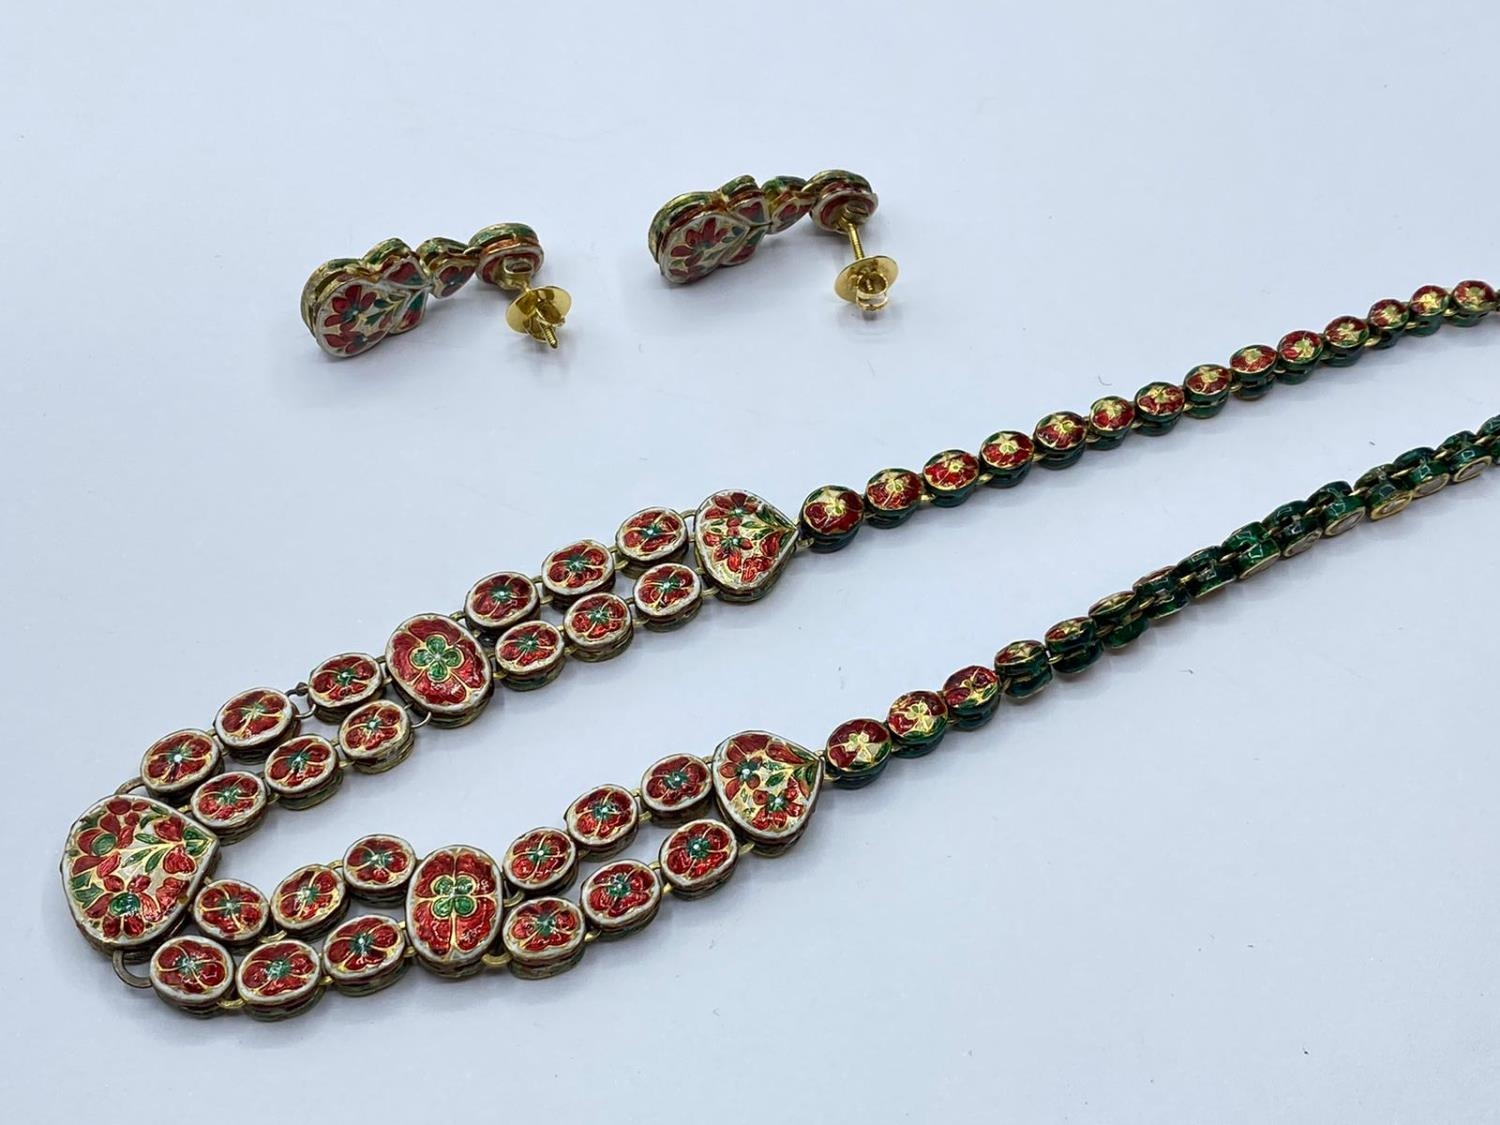 18k Indian set of Ruby and Rose Diamonds NECKLACE (40cm) and EARRINGS. 68g. - Image 7 of 9